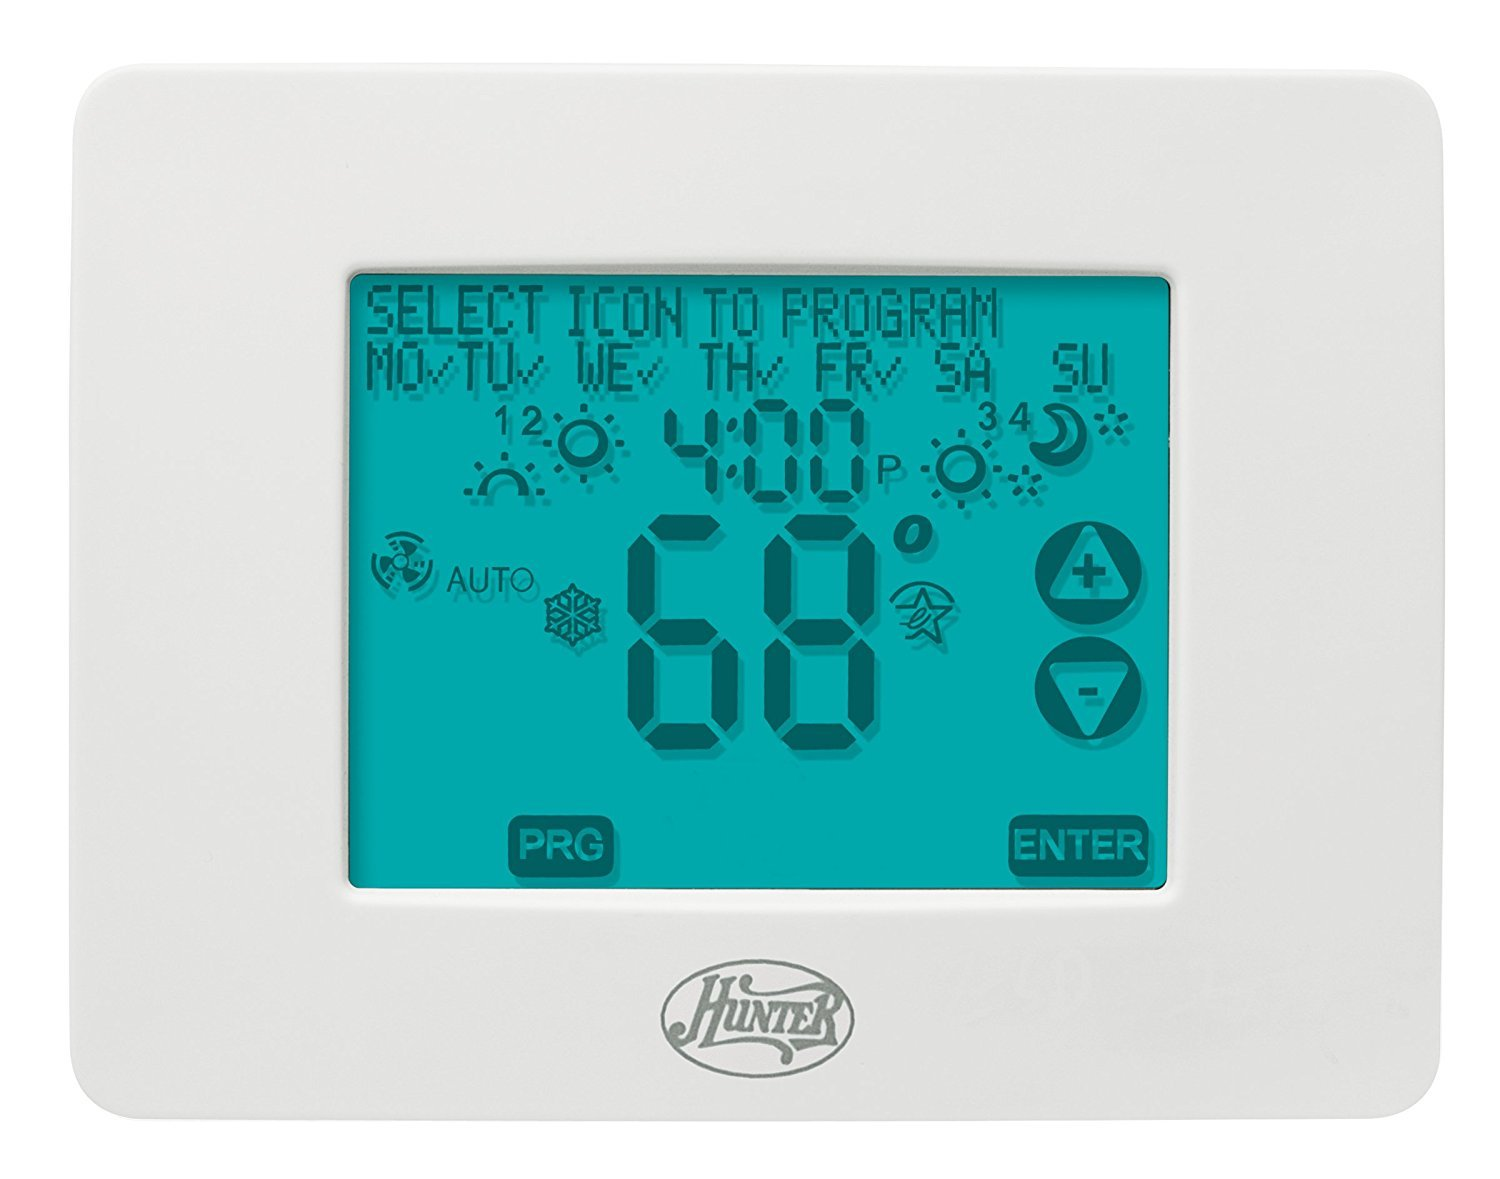 Hunter 44860 Universal 2H/2C Touchscreen Thermostat - Programmable  Household Thermostats - Amazon.com